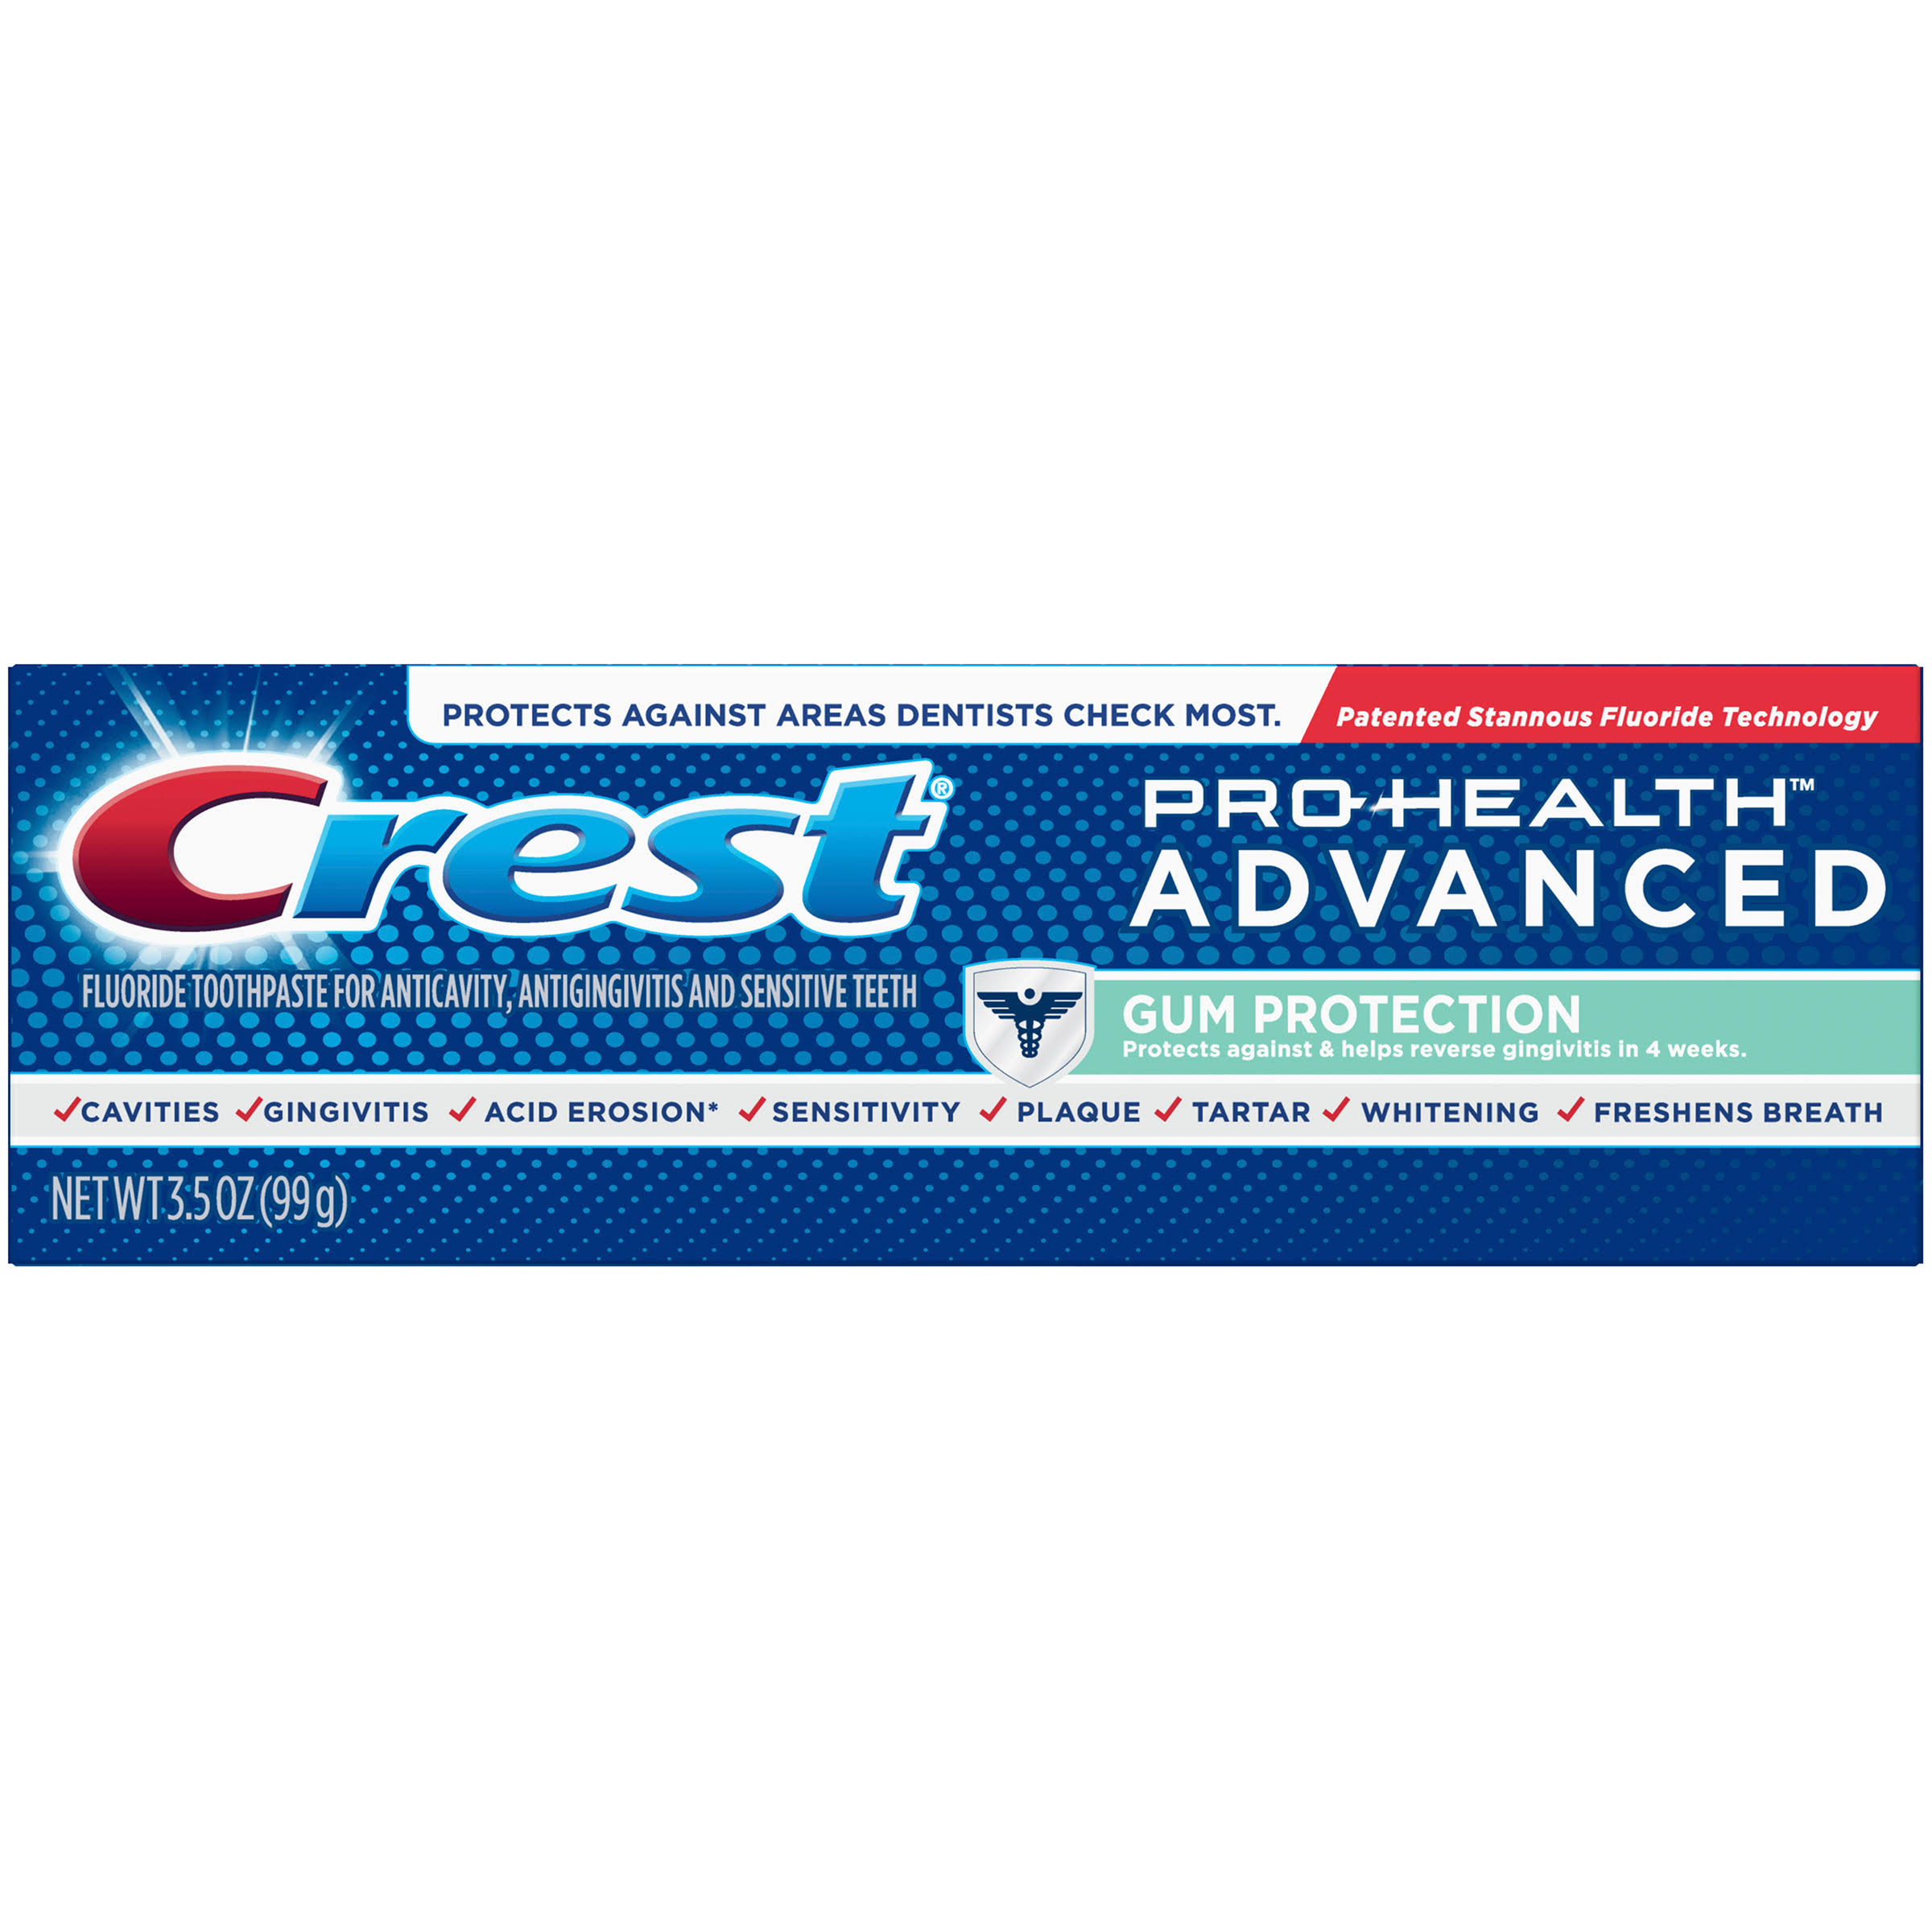 Crest Pro Health Advanced Gum Protection Toothpaste - 99g